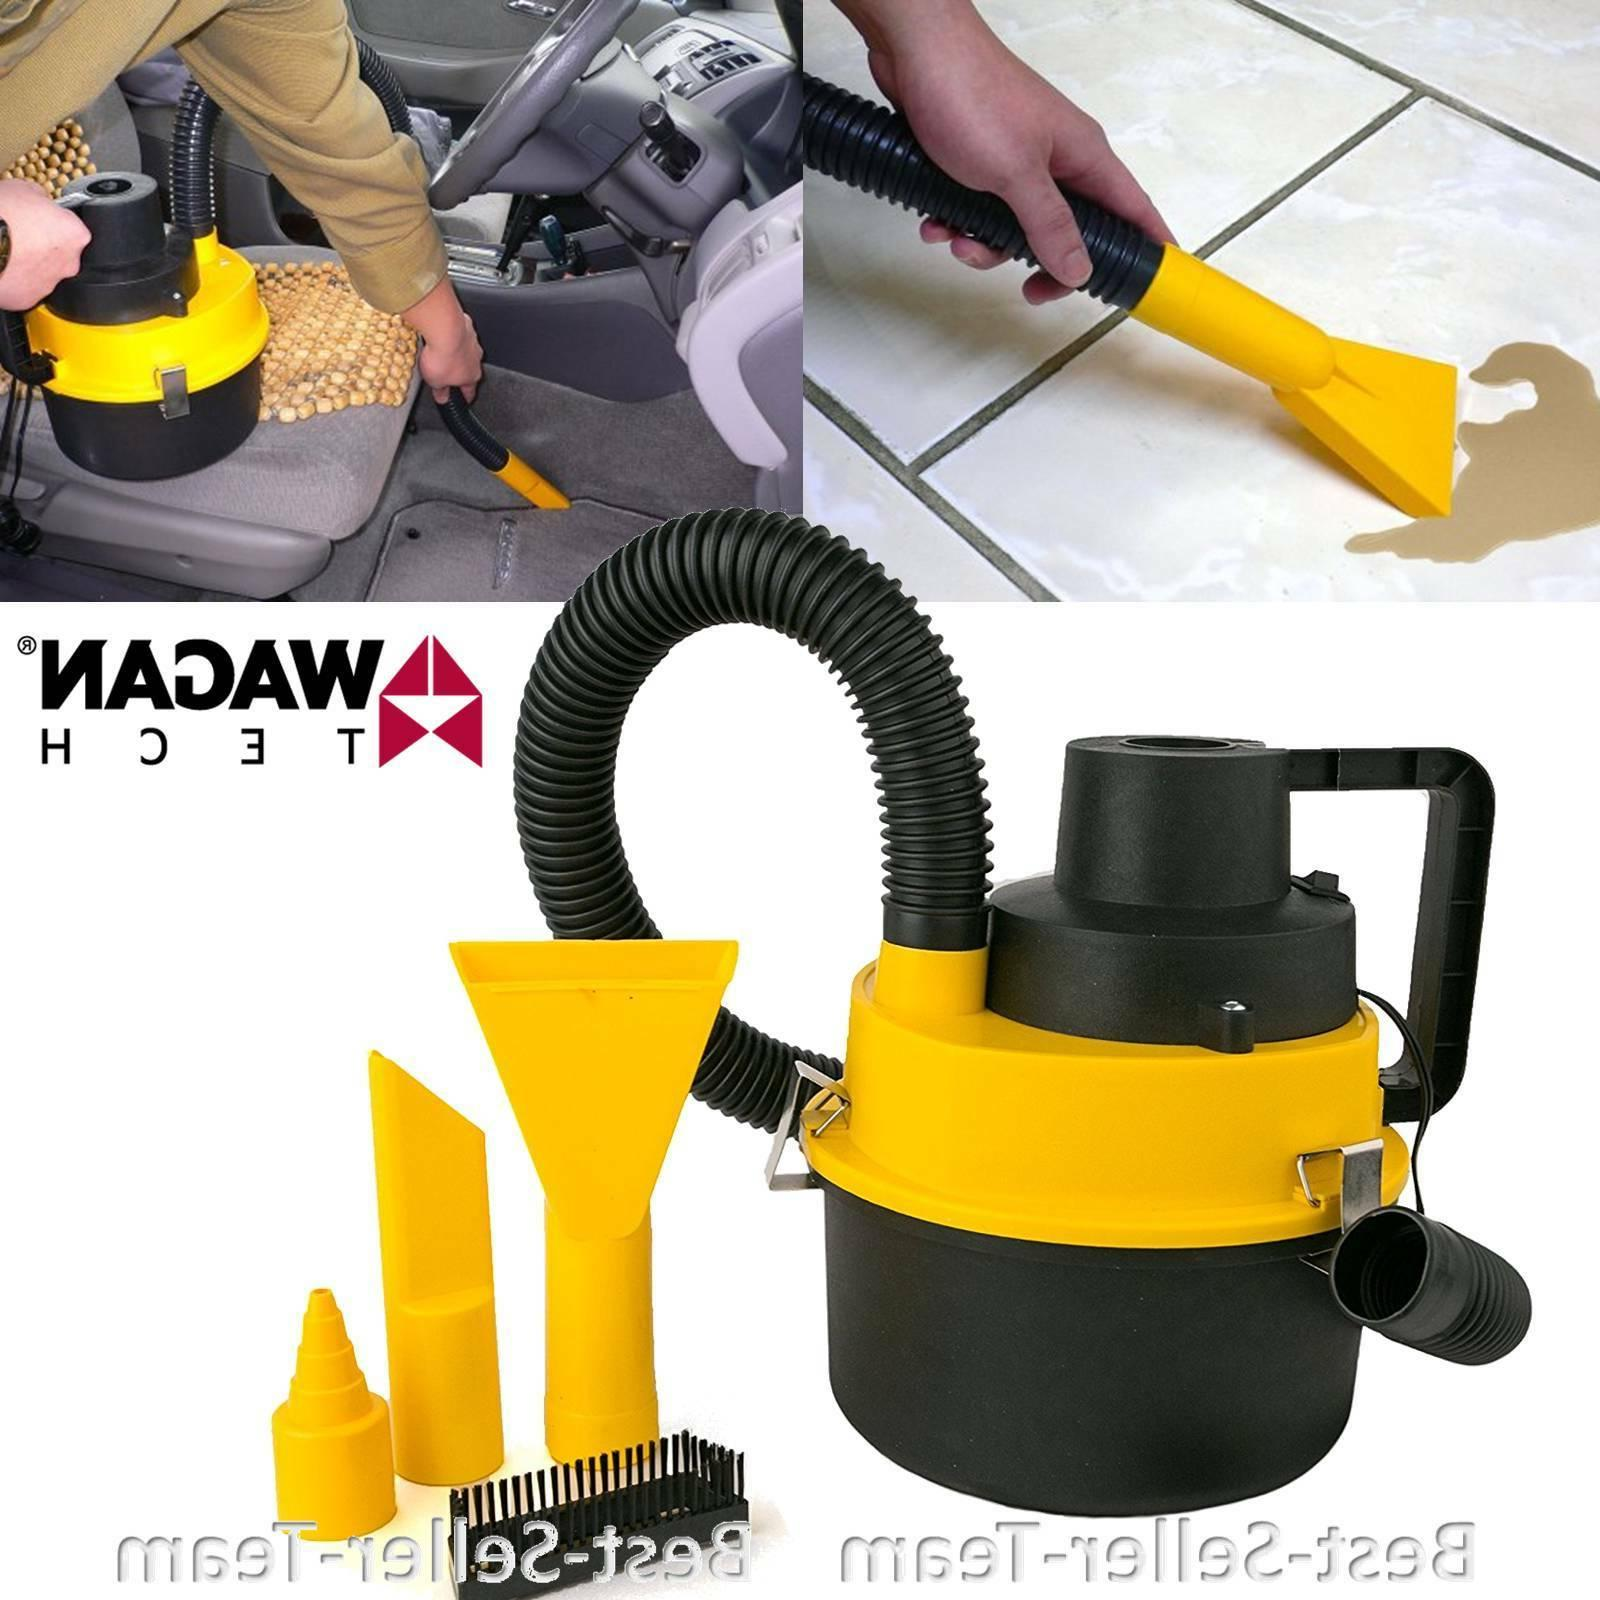 tech 750 wet and dry ultra vacuum